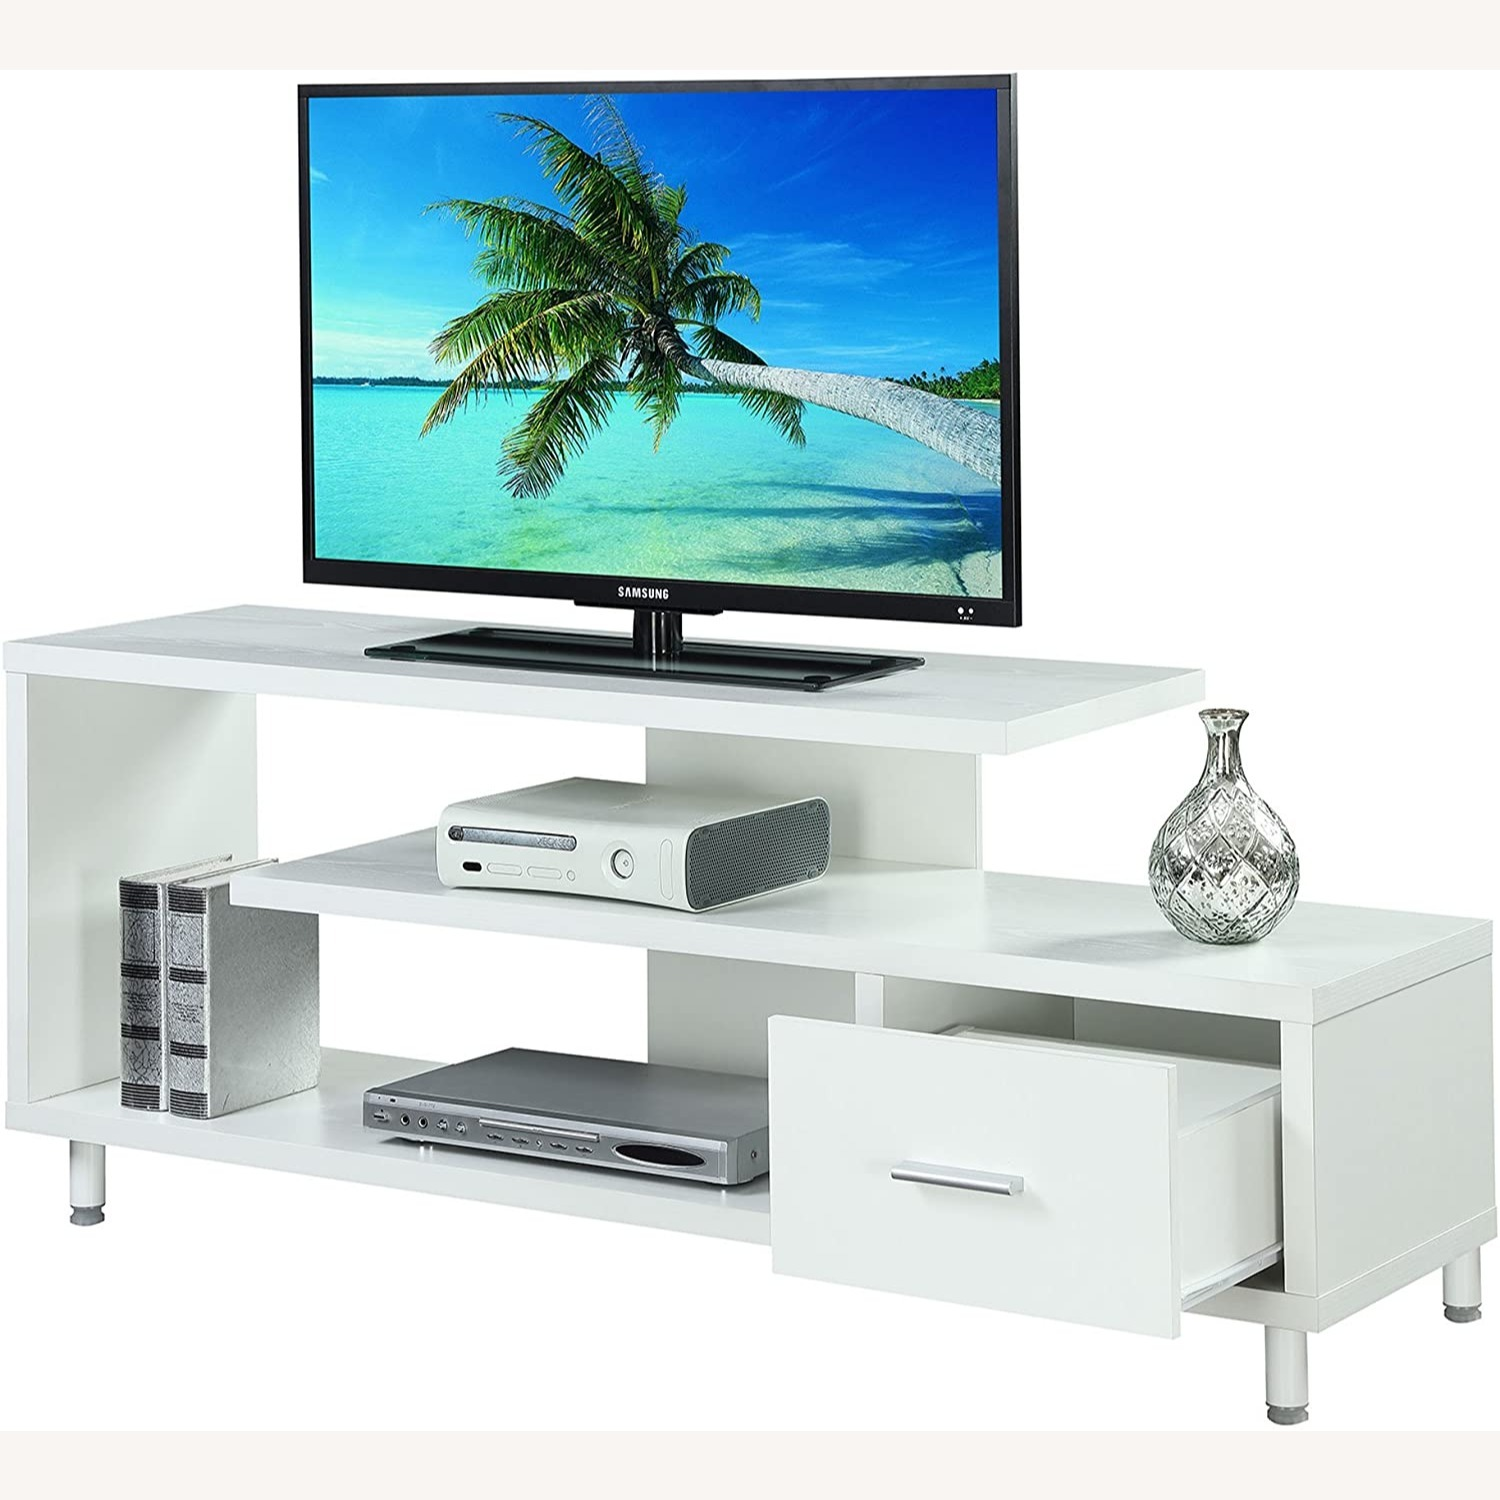 "Convenience Concepts Modern 60"" TV Stand White - image-2"